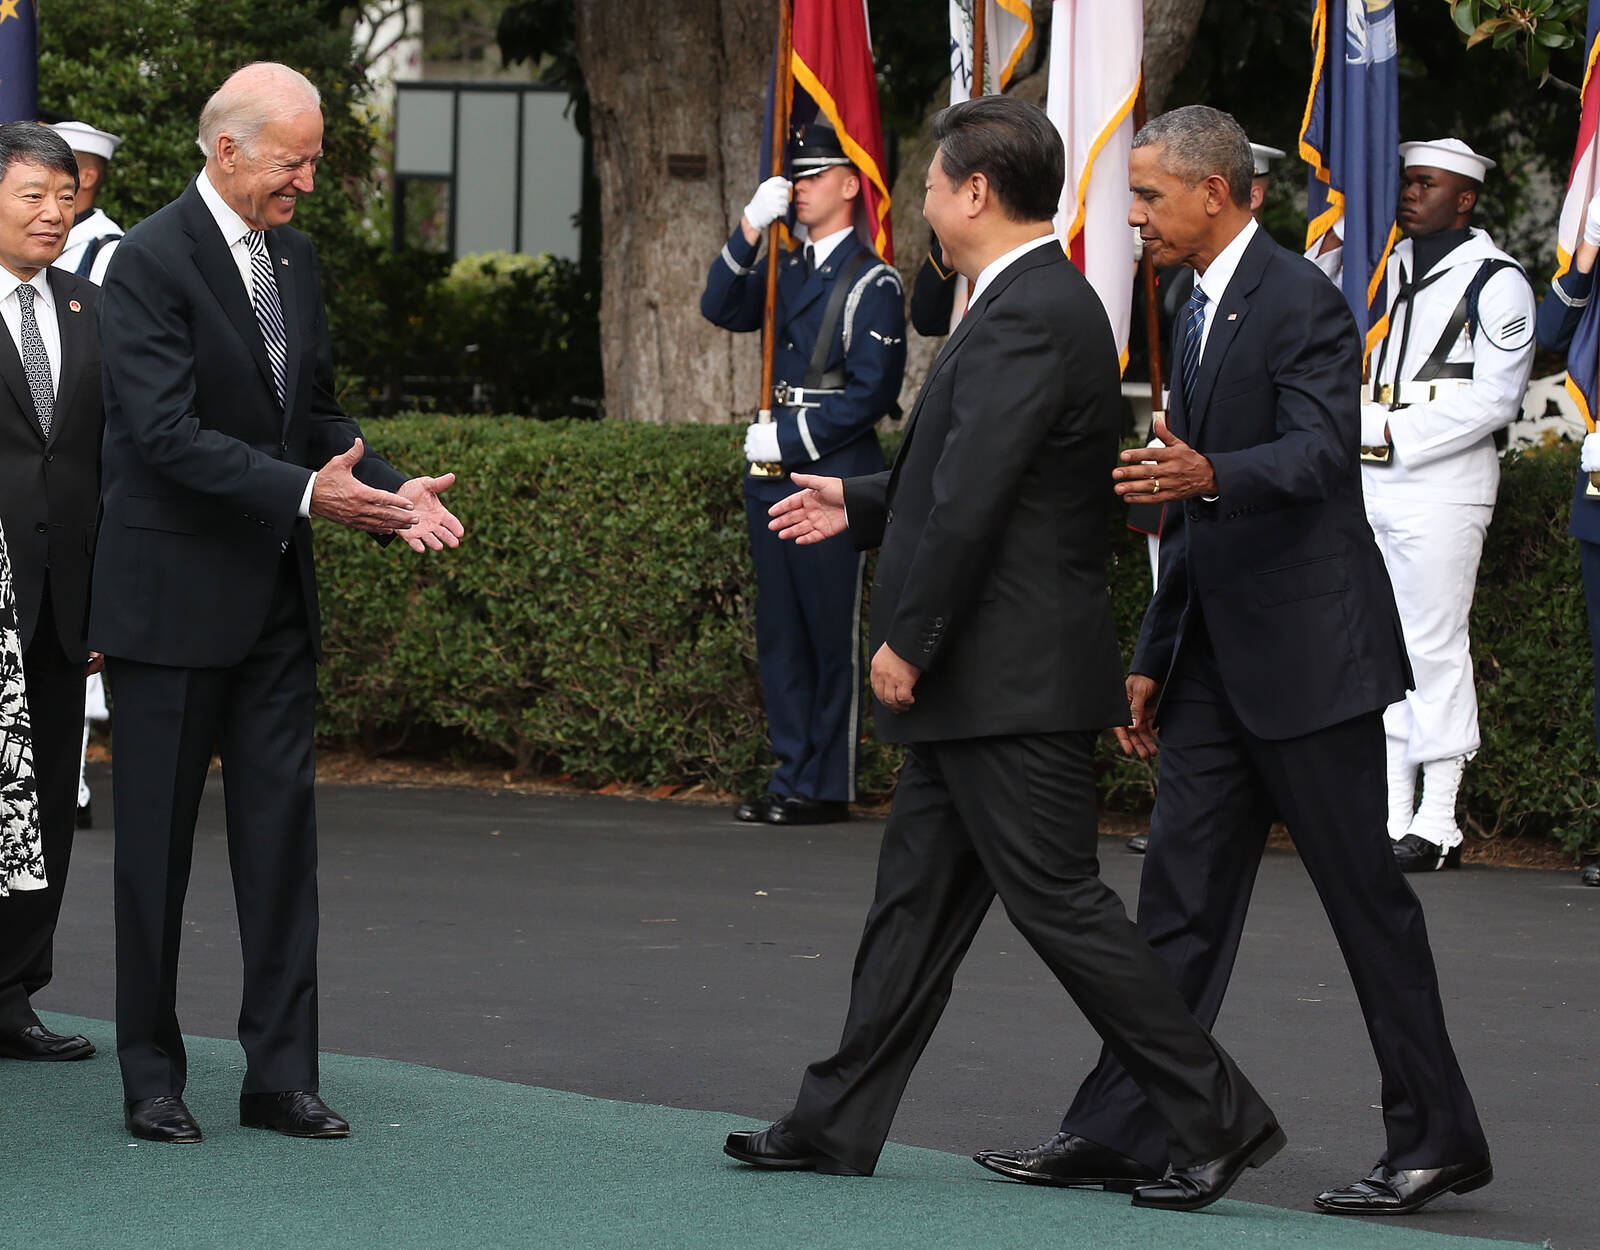 Vice President Joe Biden reaches to shake hands with Chinese president Xi Jinping, as President Barack Obama stands nearby during arrival ceremony at the White House September 25, 2015 in Washington, D.C. Credit: Mark Wilson/Getty Images